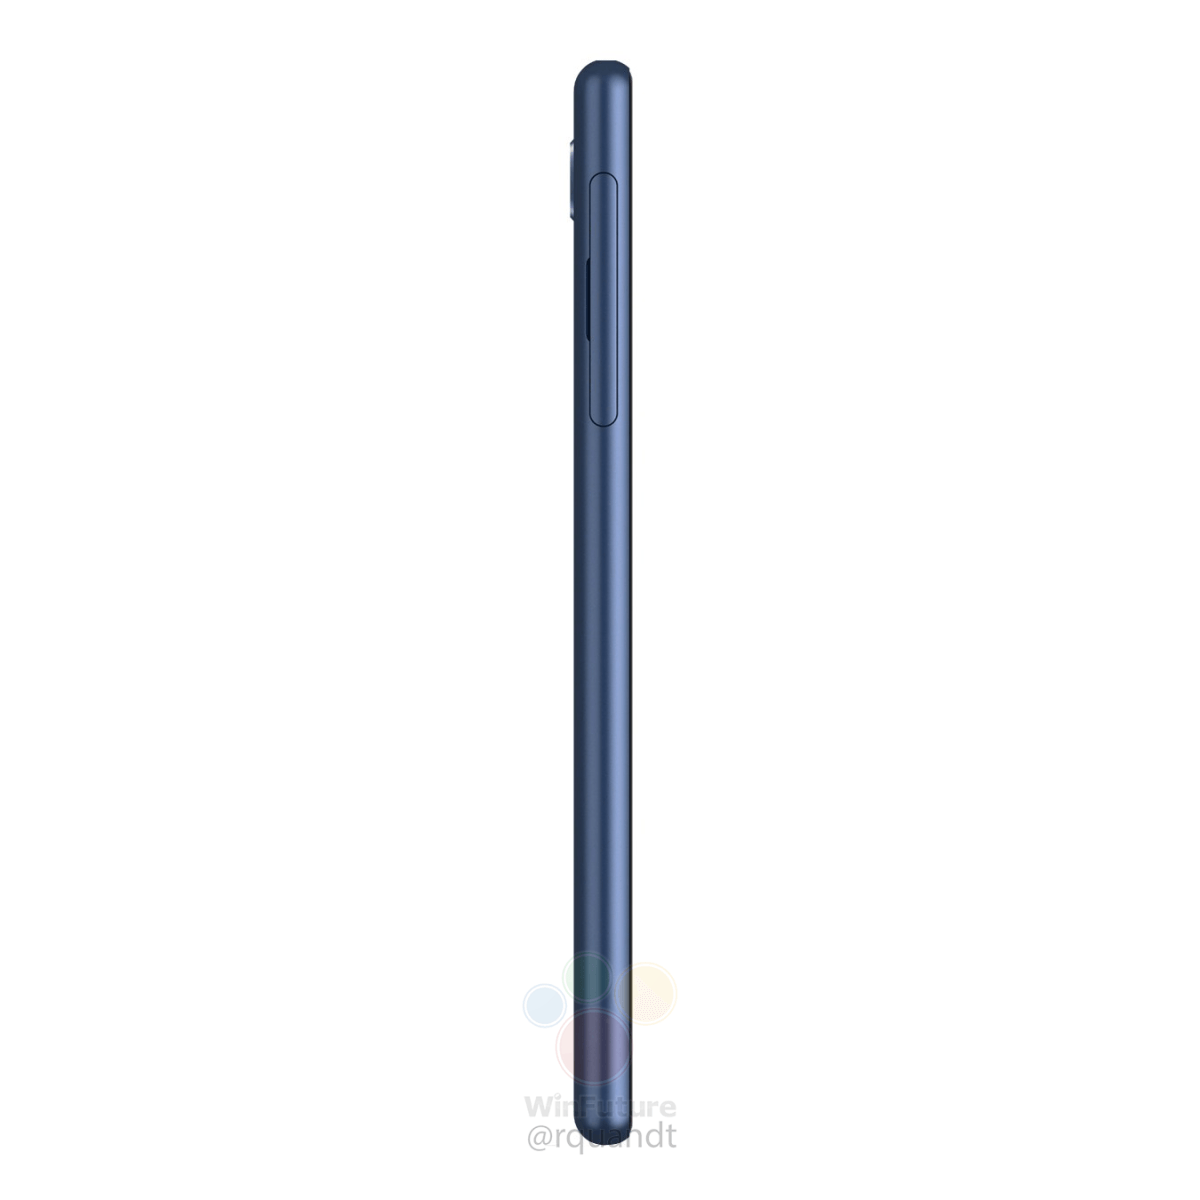 Press Renders: This is the Sony Xperia XA3 with that long 21:9 display 11